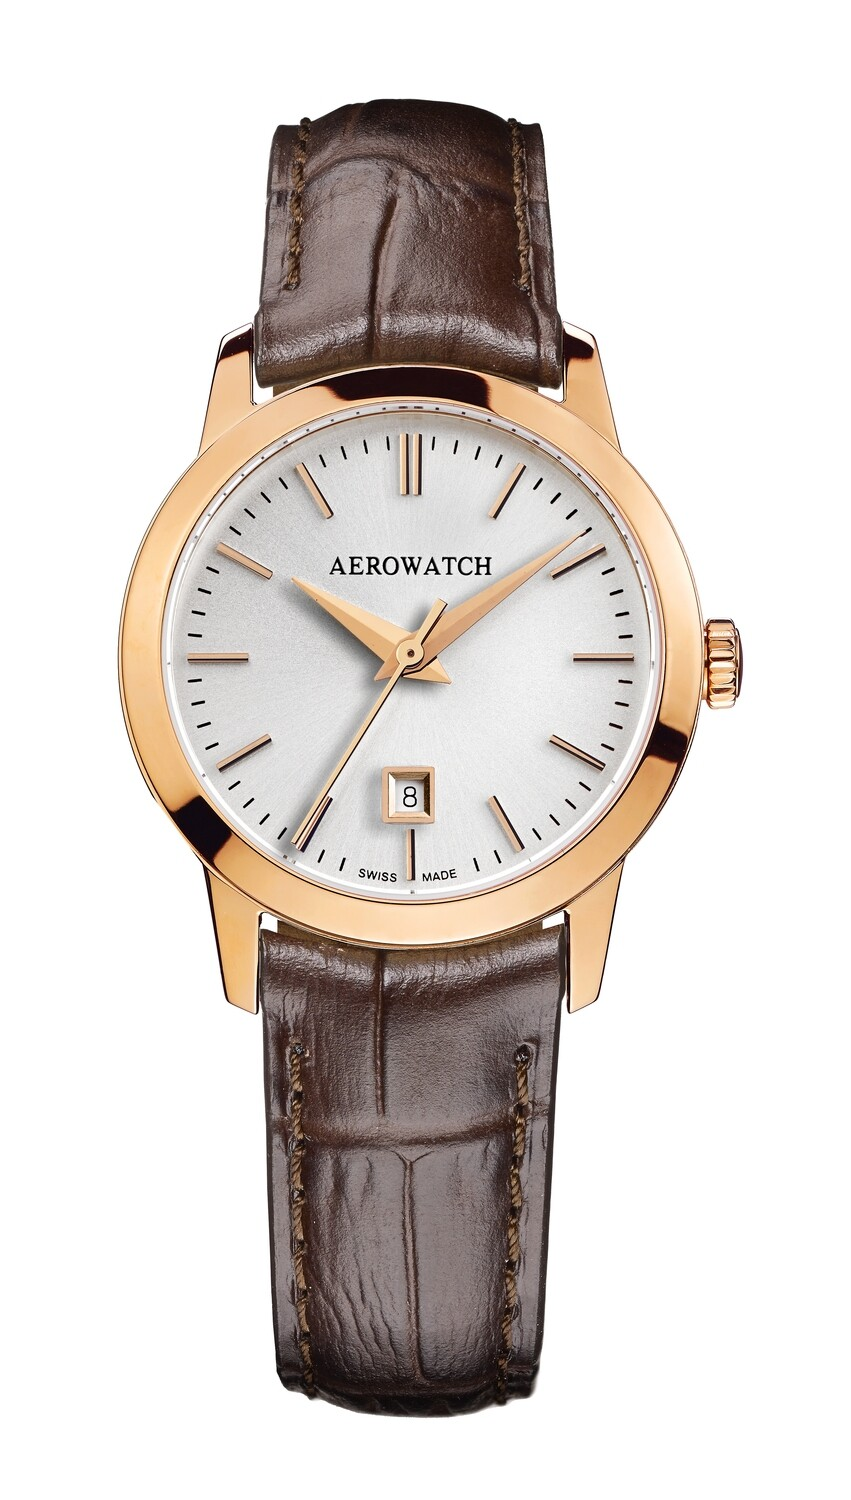 Montre dame mouvement quartz